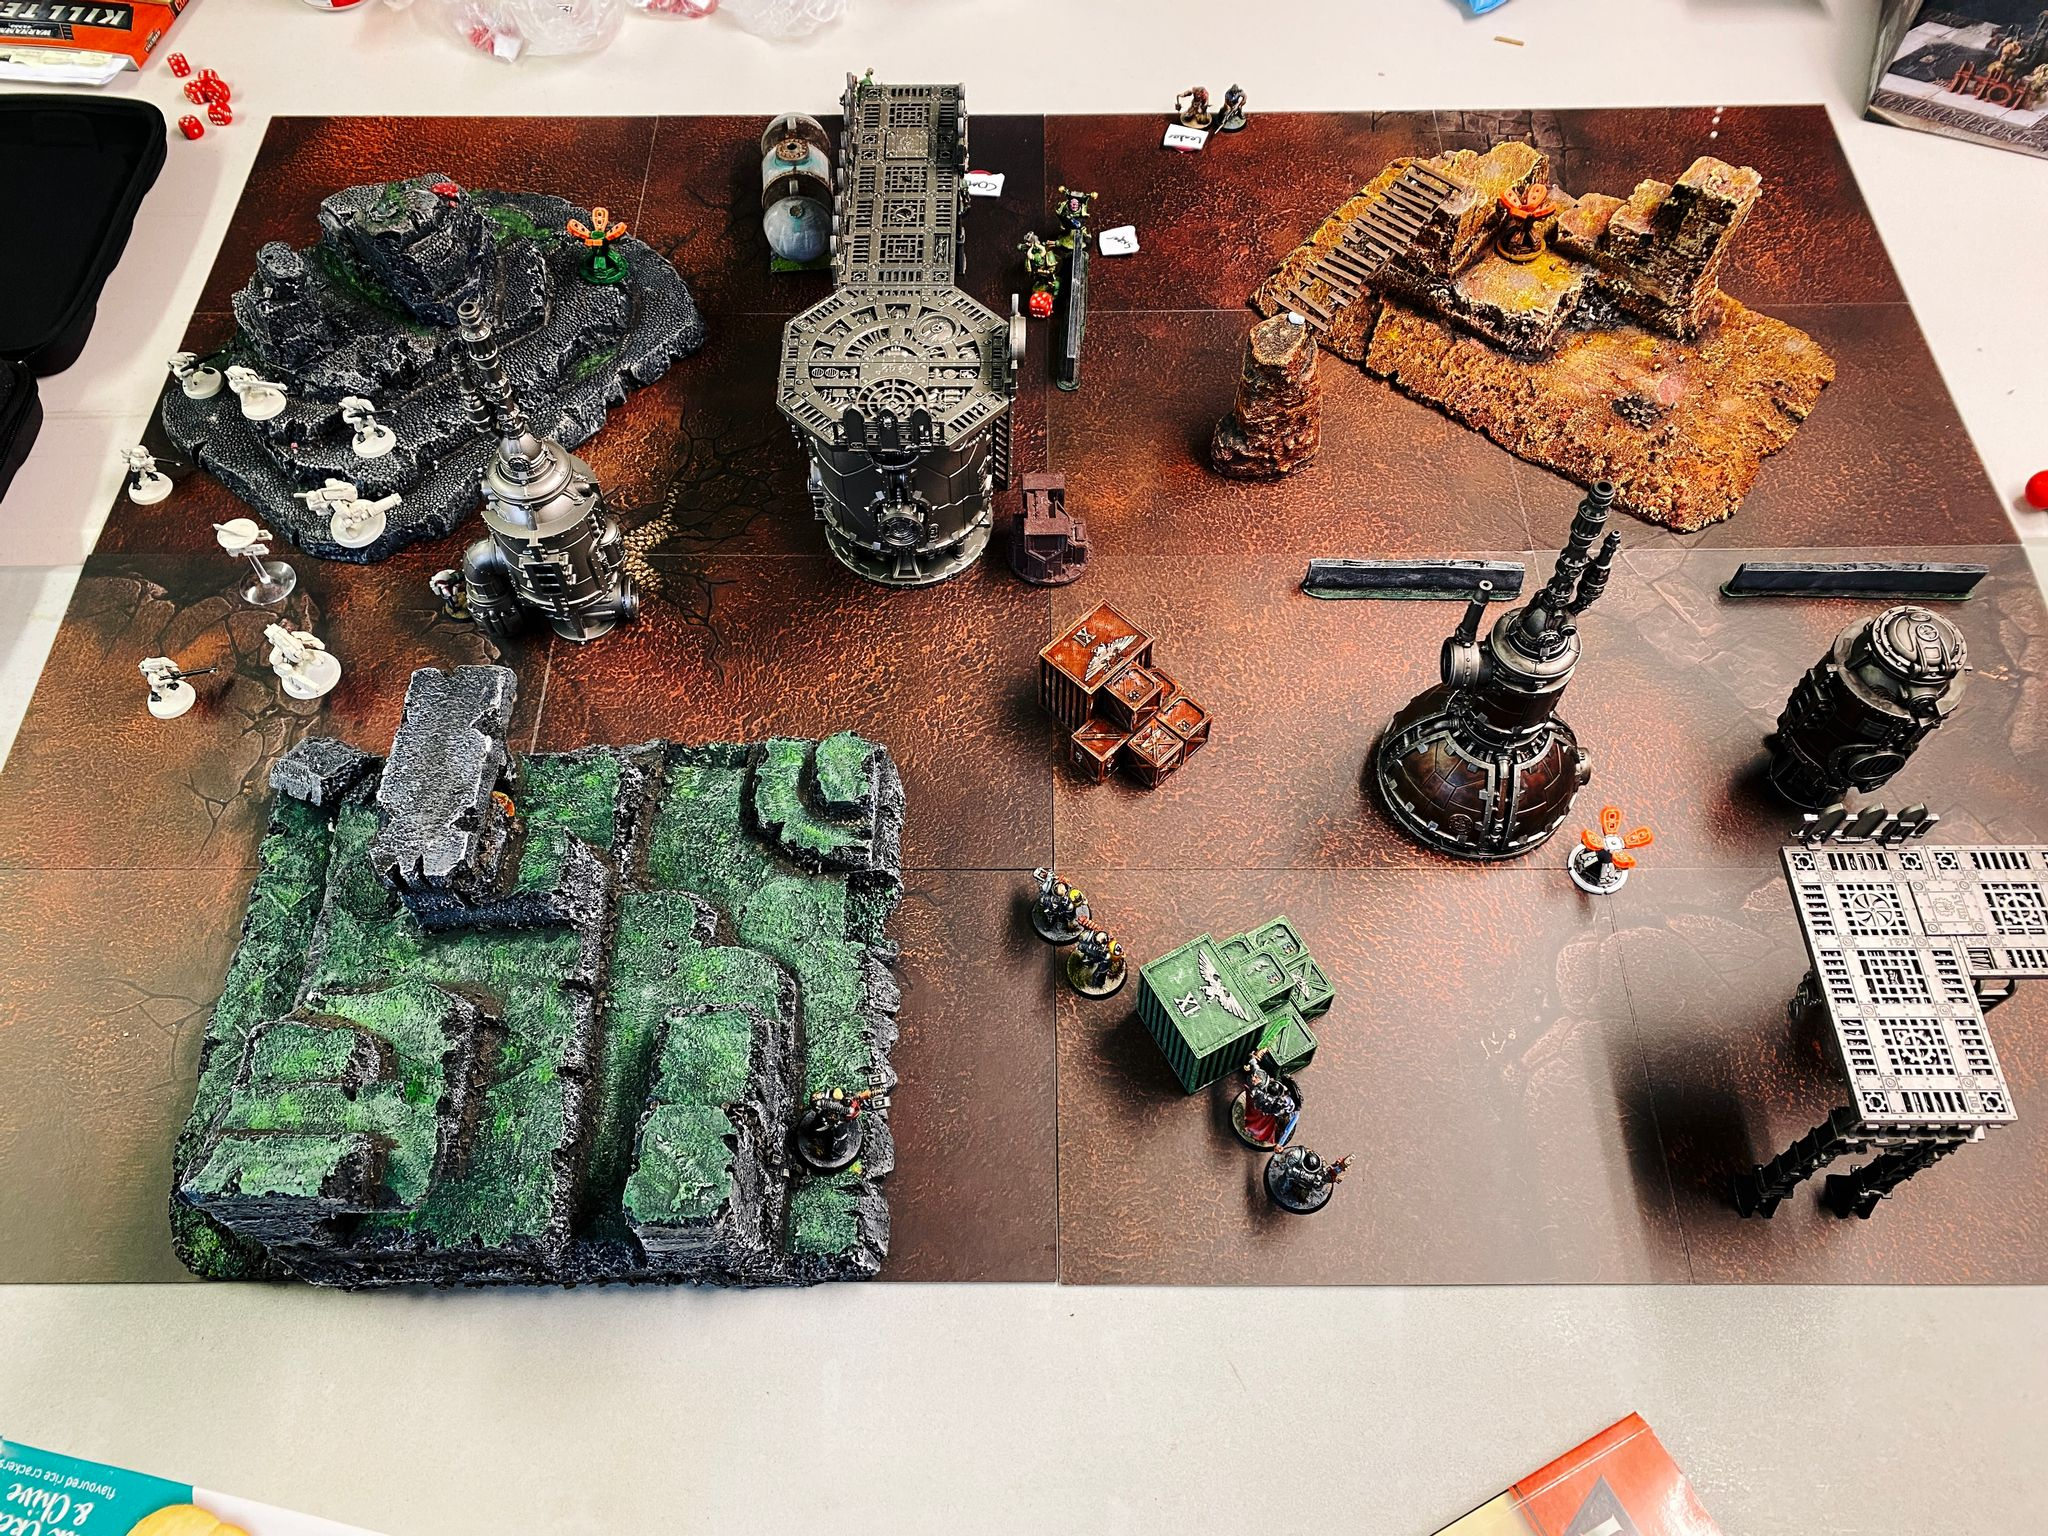 A photo of a Warhammer 40K Kill Team board with terrain in it. There's a bunch of industrial-looking bits at the right side, and some granite stony-looking craggy tiered cliffs on the left.